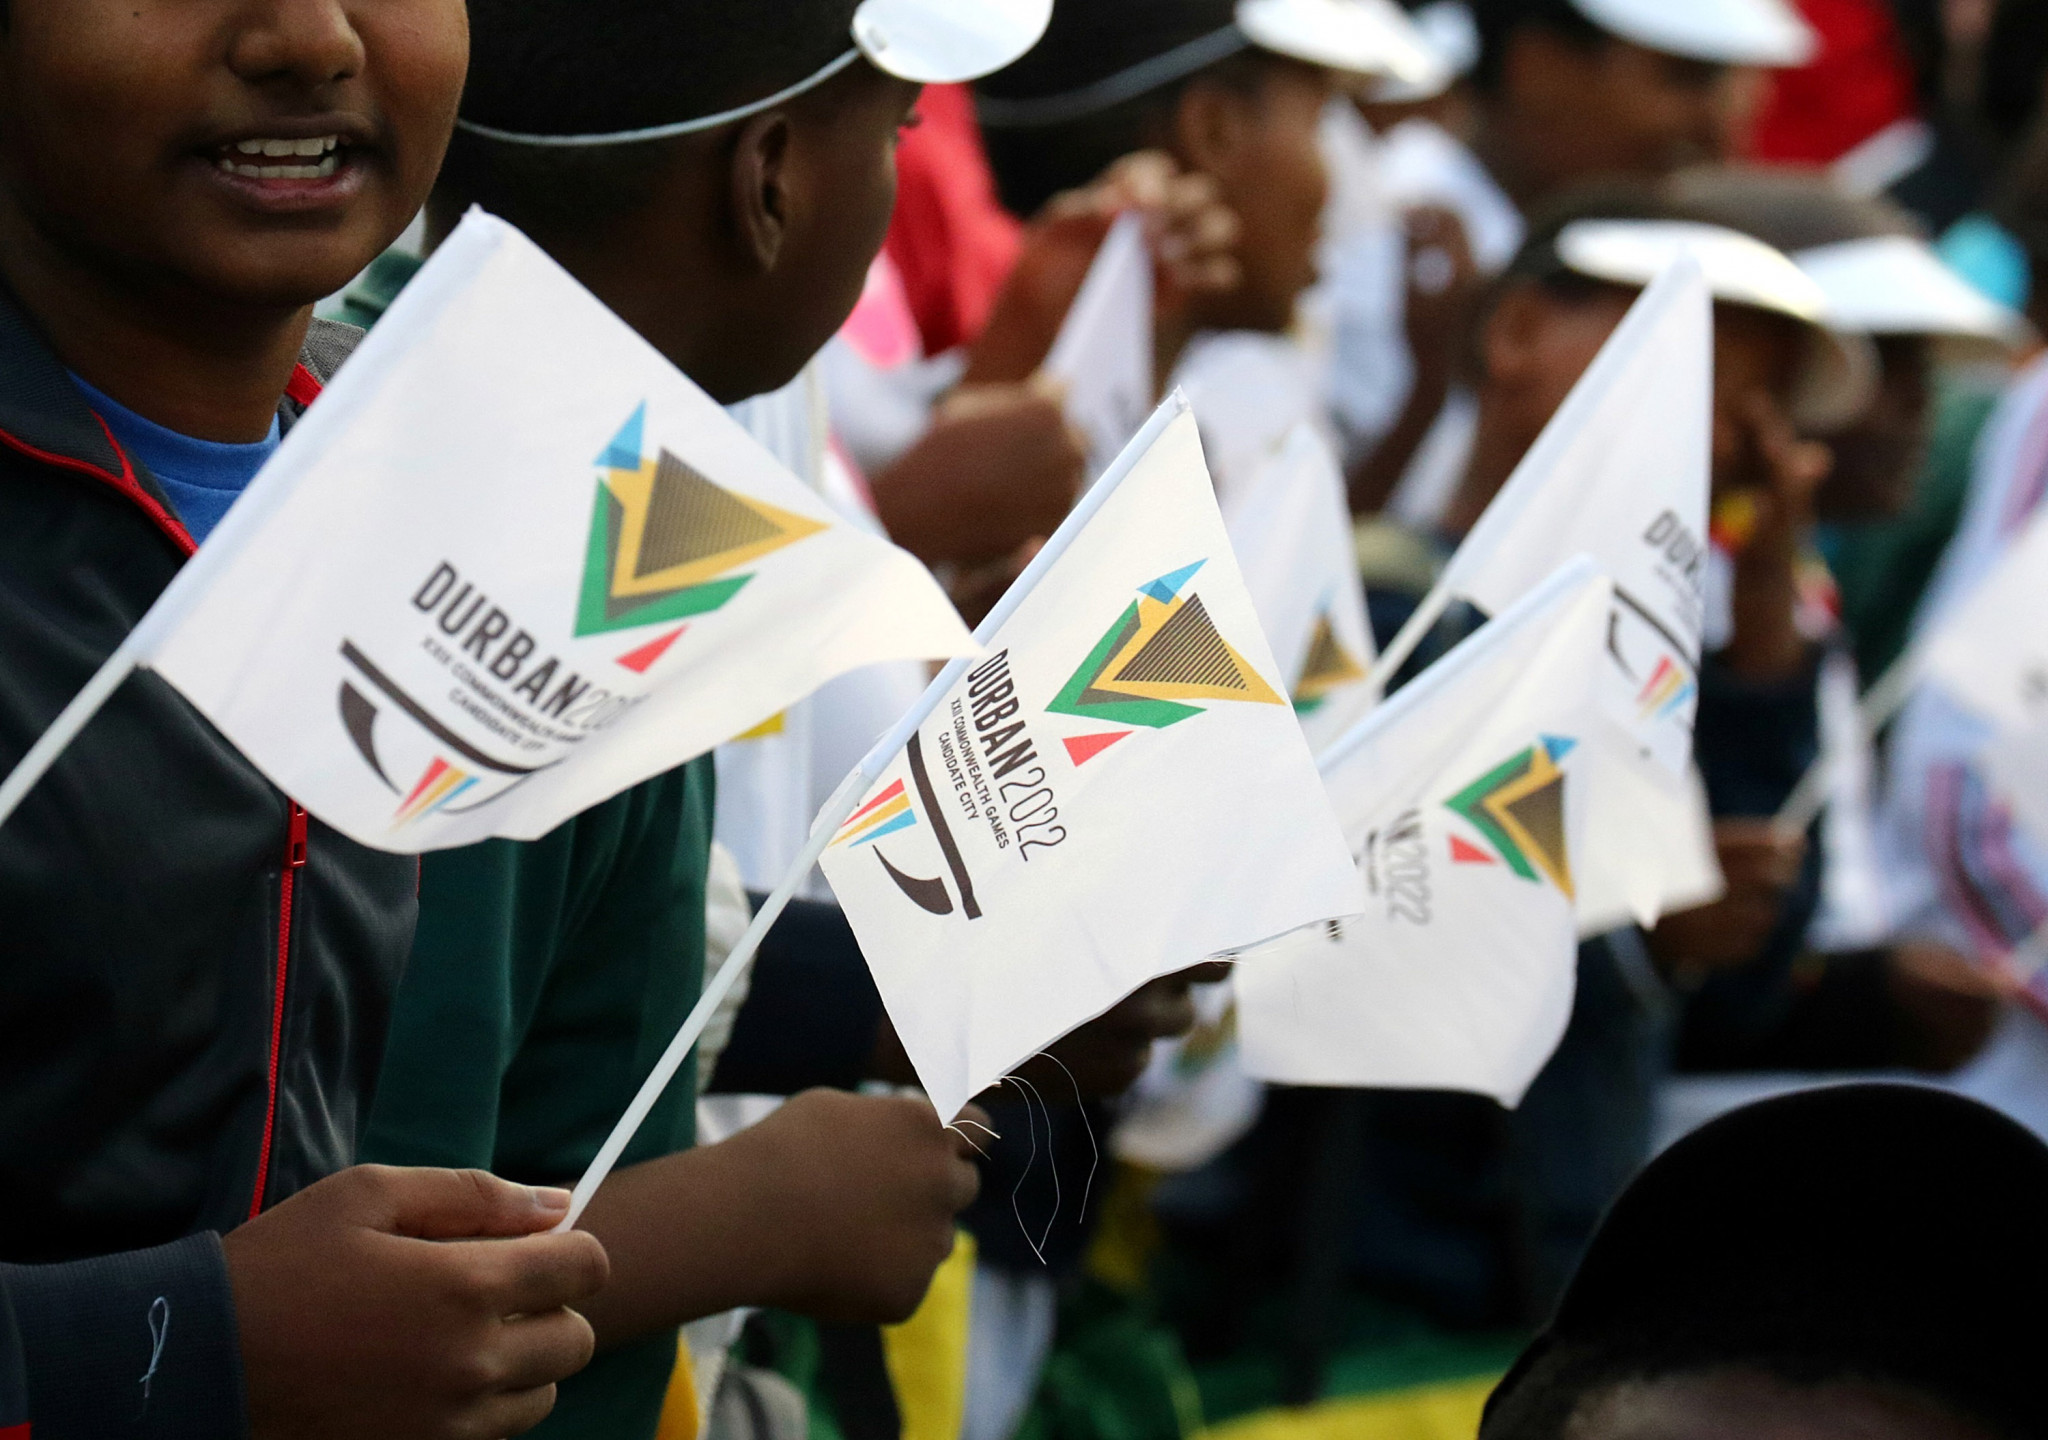 Durban's ill-fated attempt to host the Commonwealth Games damaged South Africa's credibility ©Getty Images